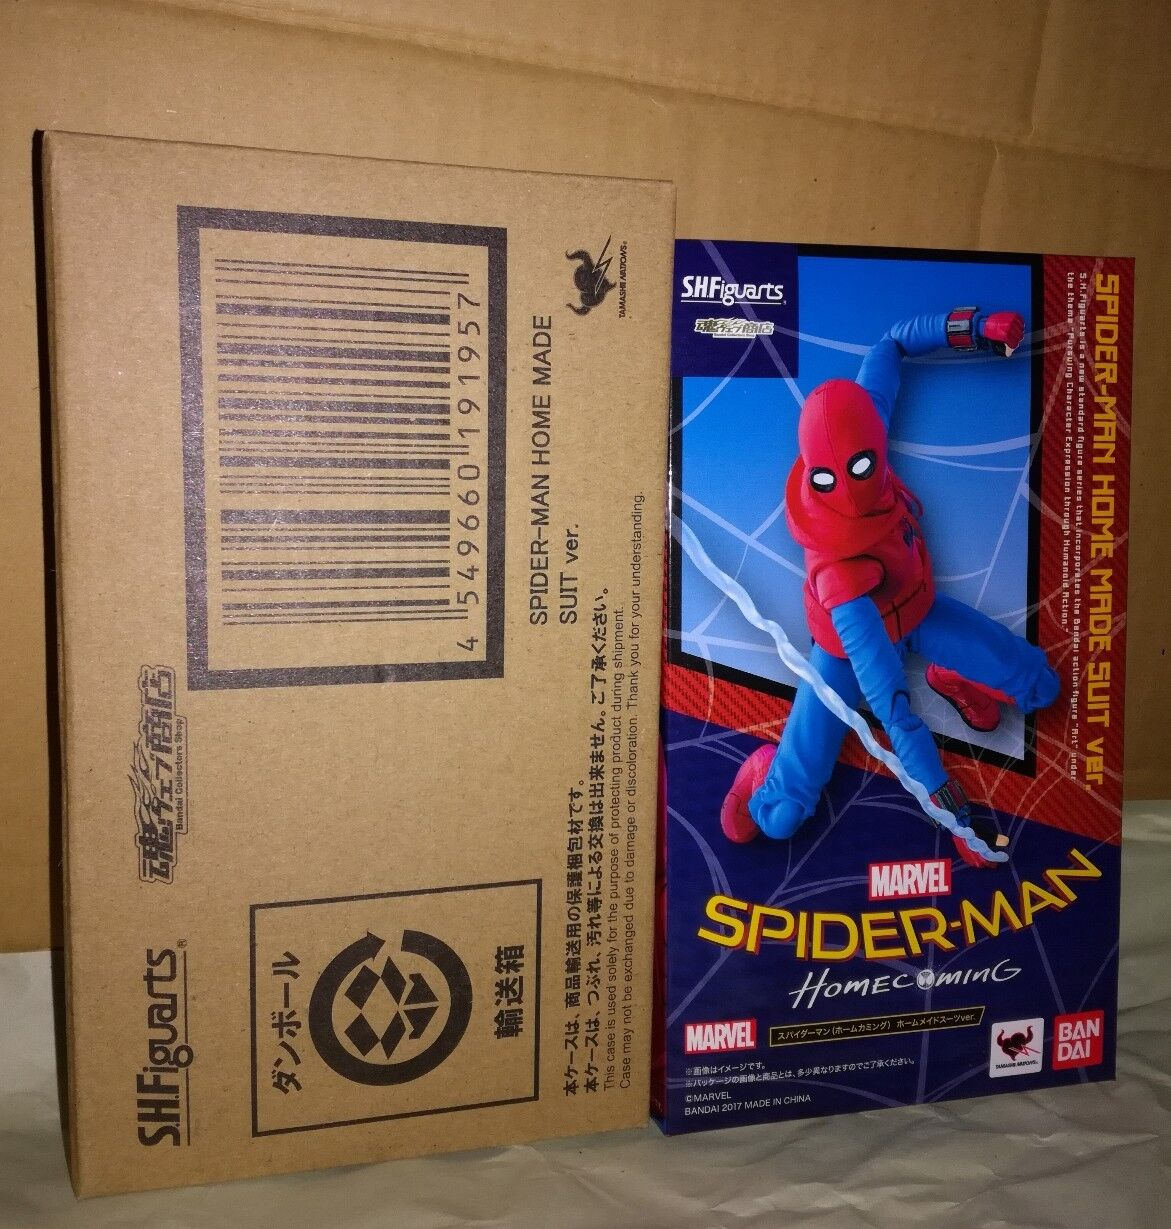 Bandai SH Figuarts Spider-man Homecoming Home Coming Made Suit Spiderman Limited